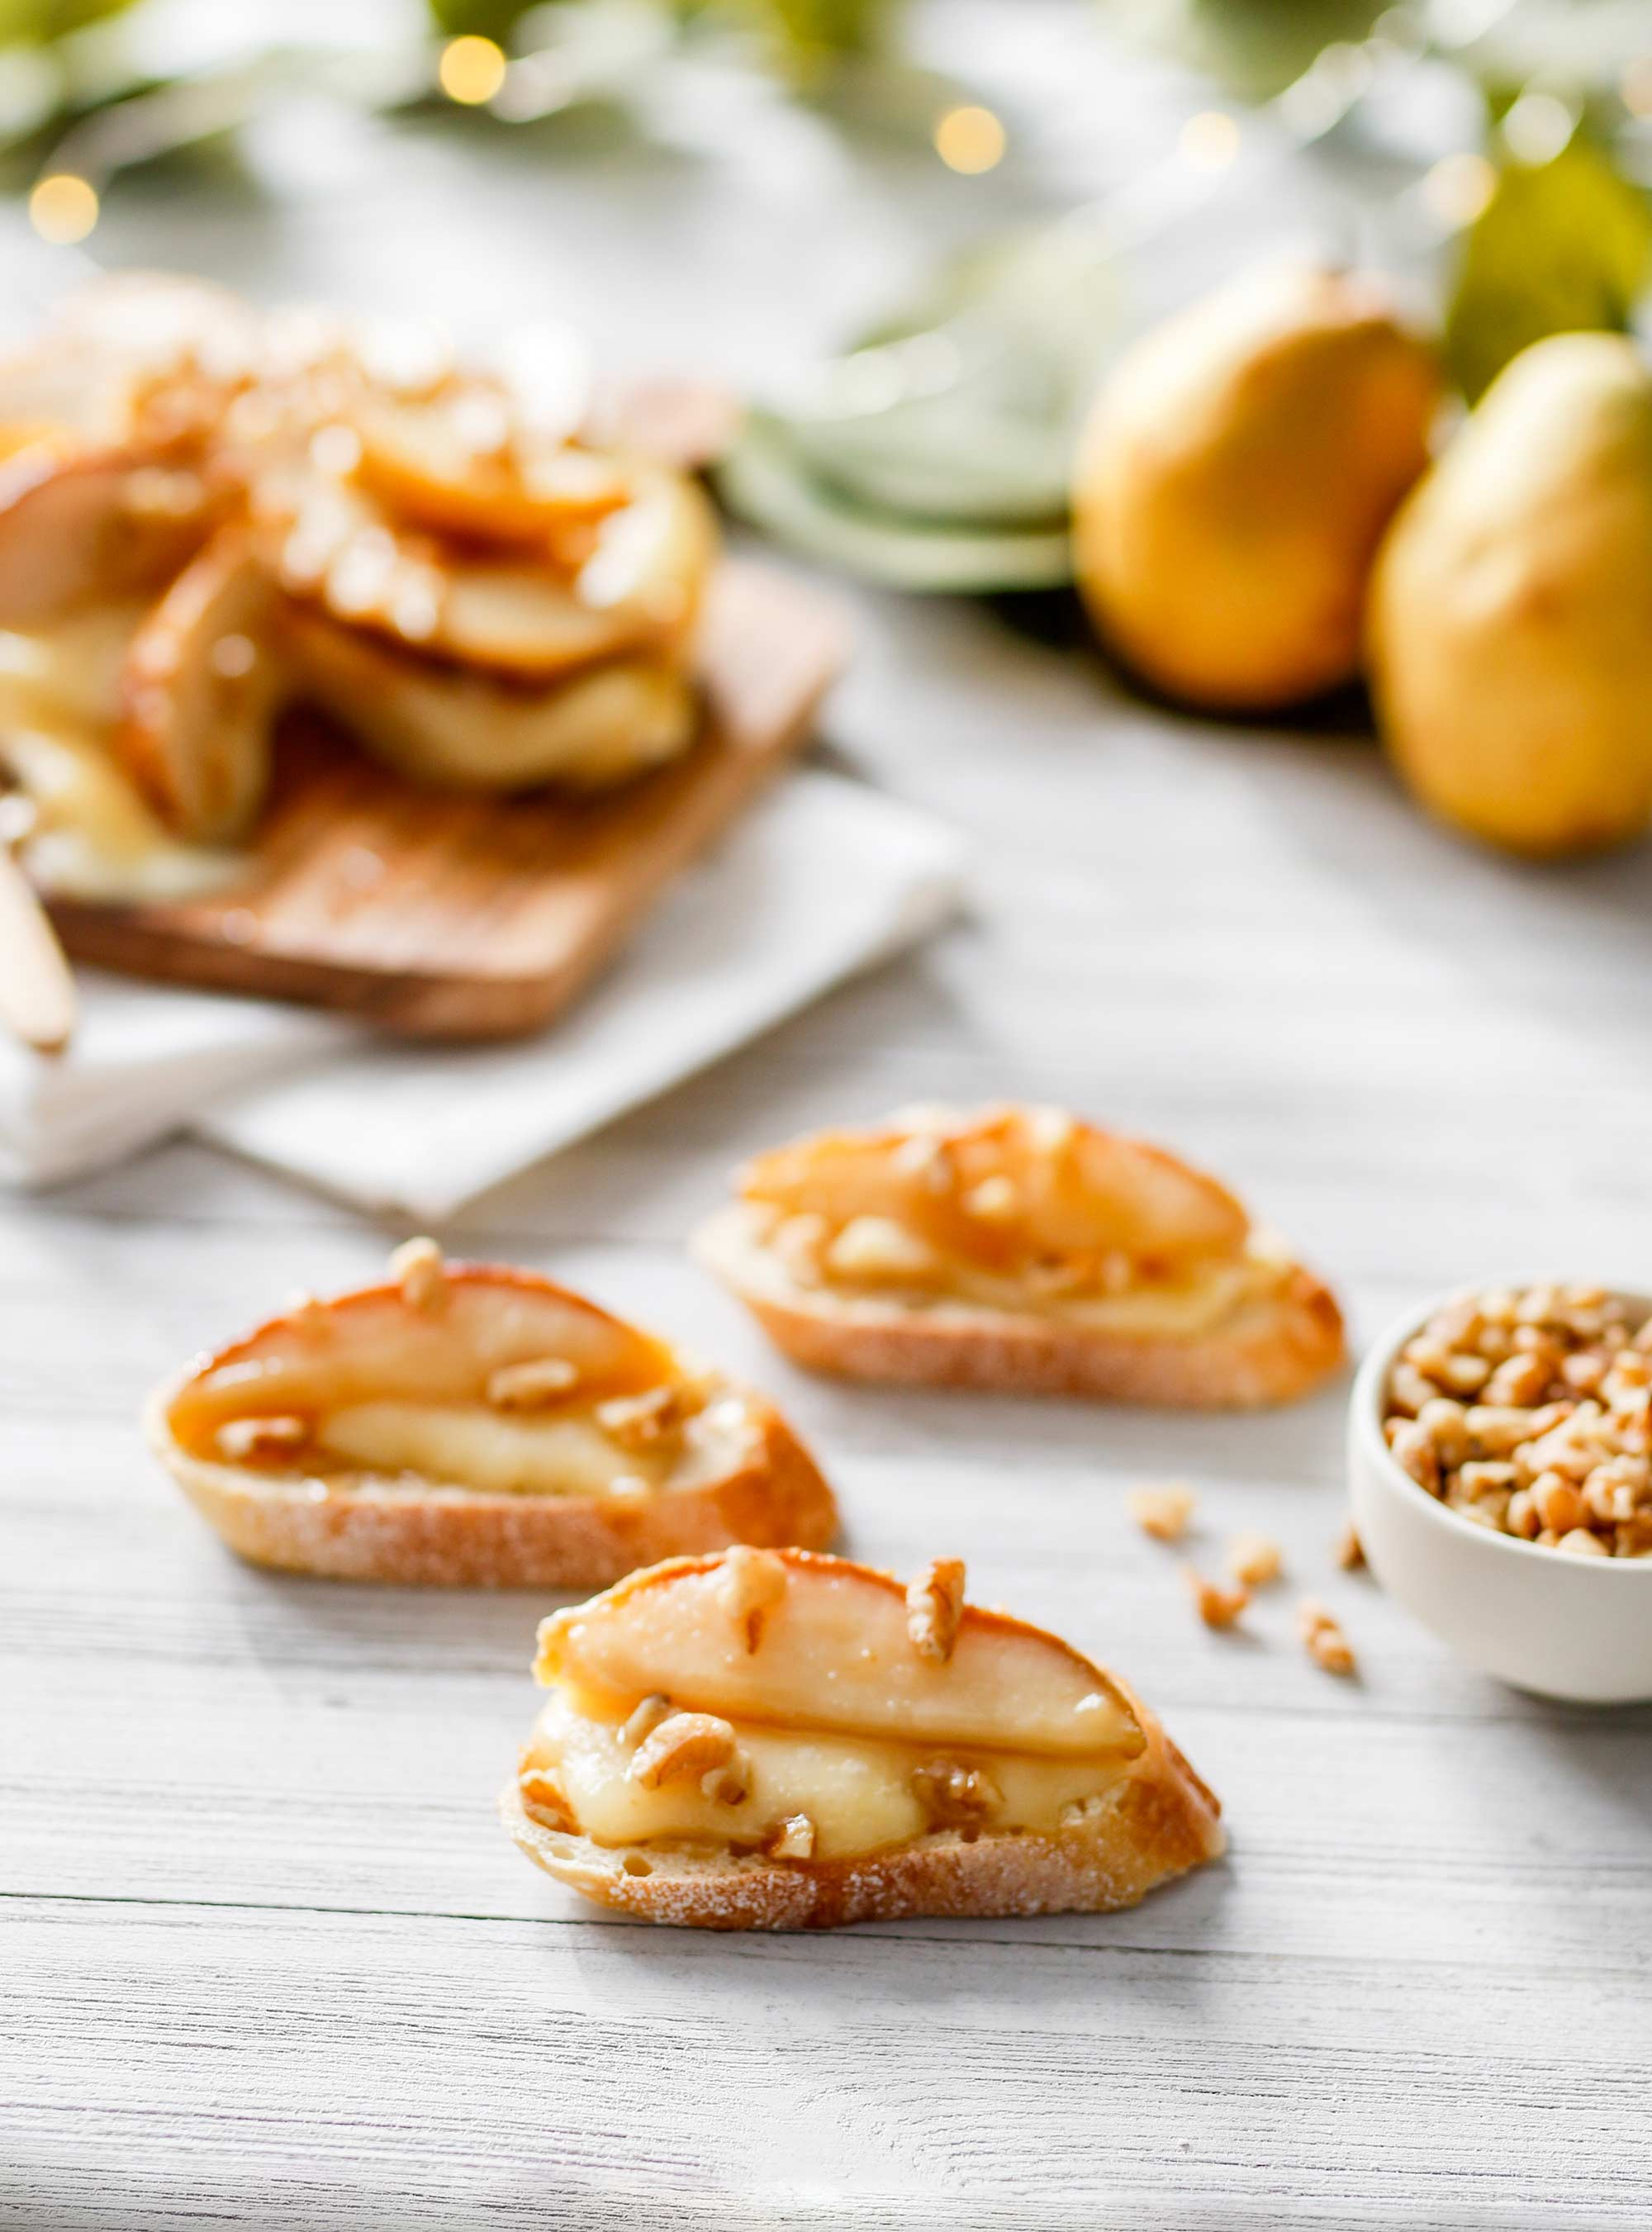 Caramelized Pear and Walnut Topped Brie with Honey